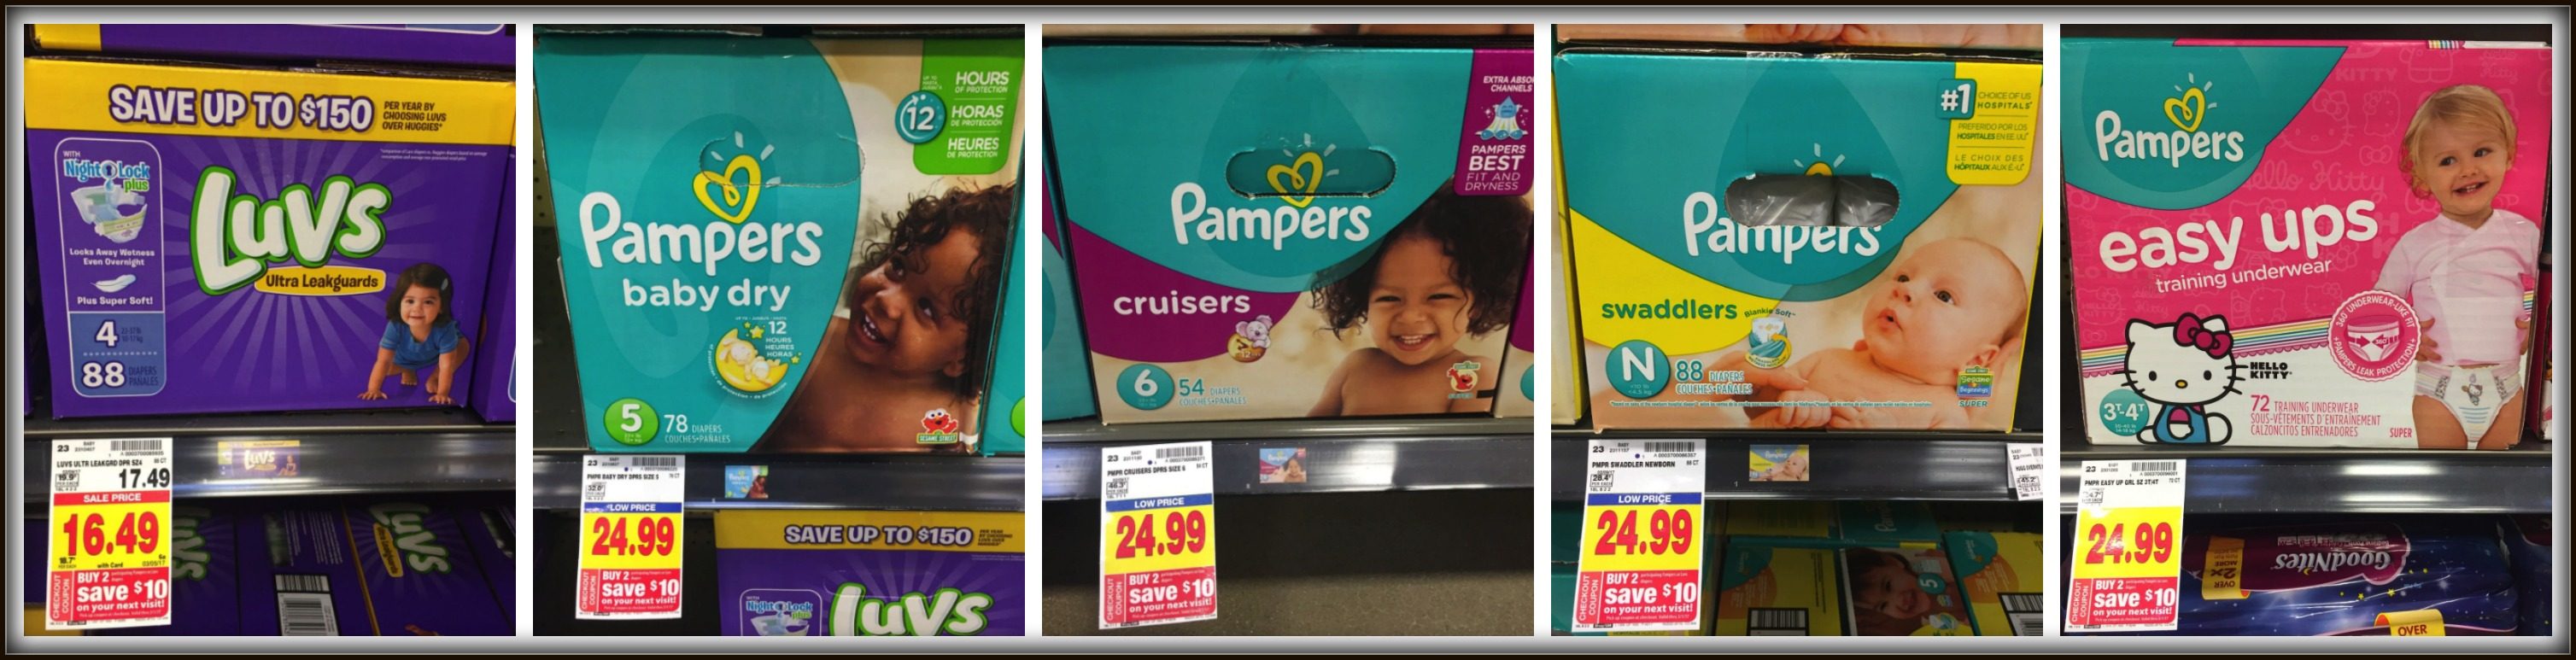 pampers luvs